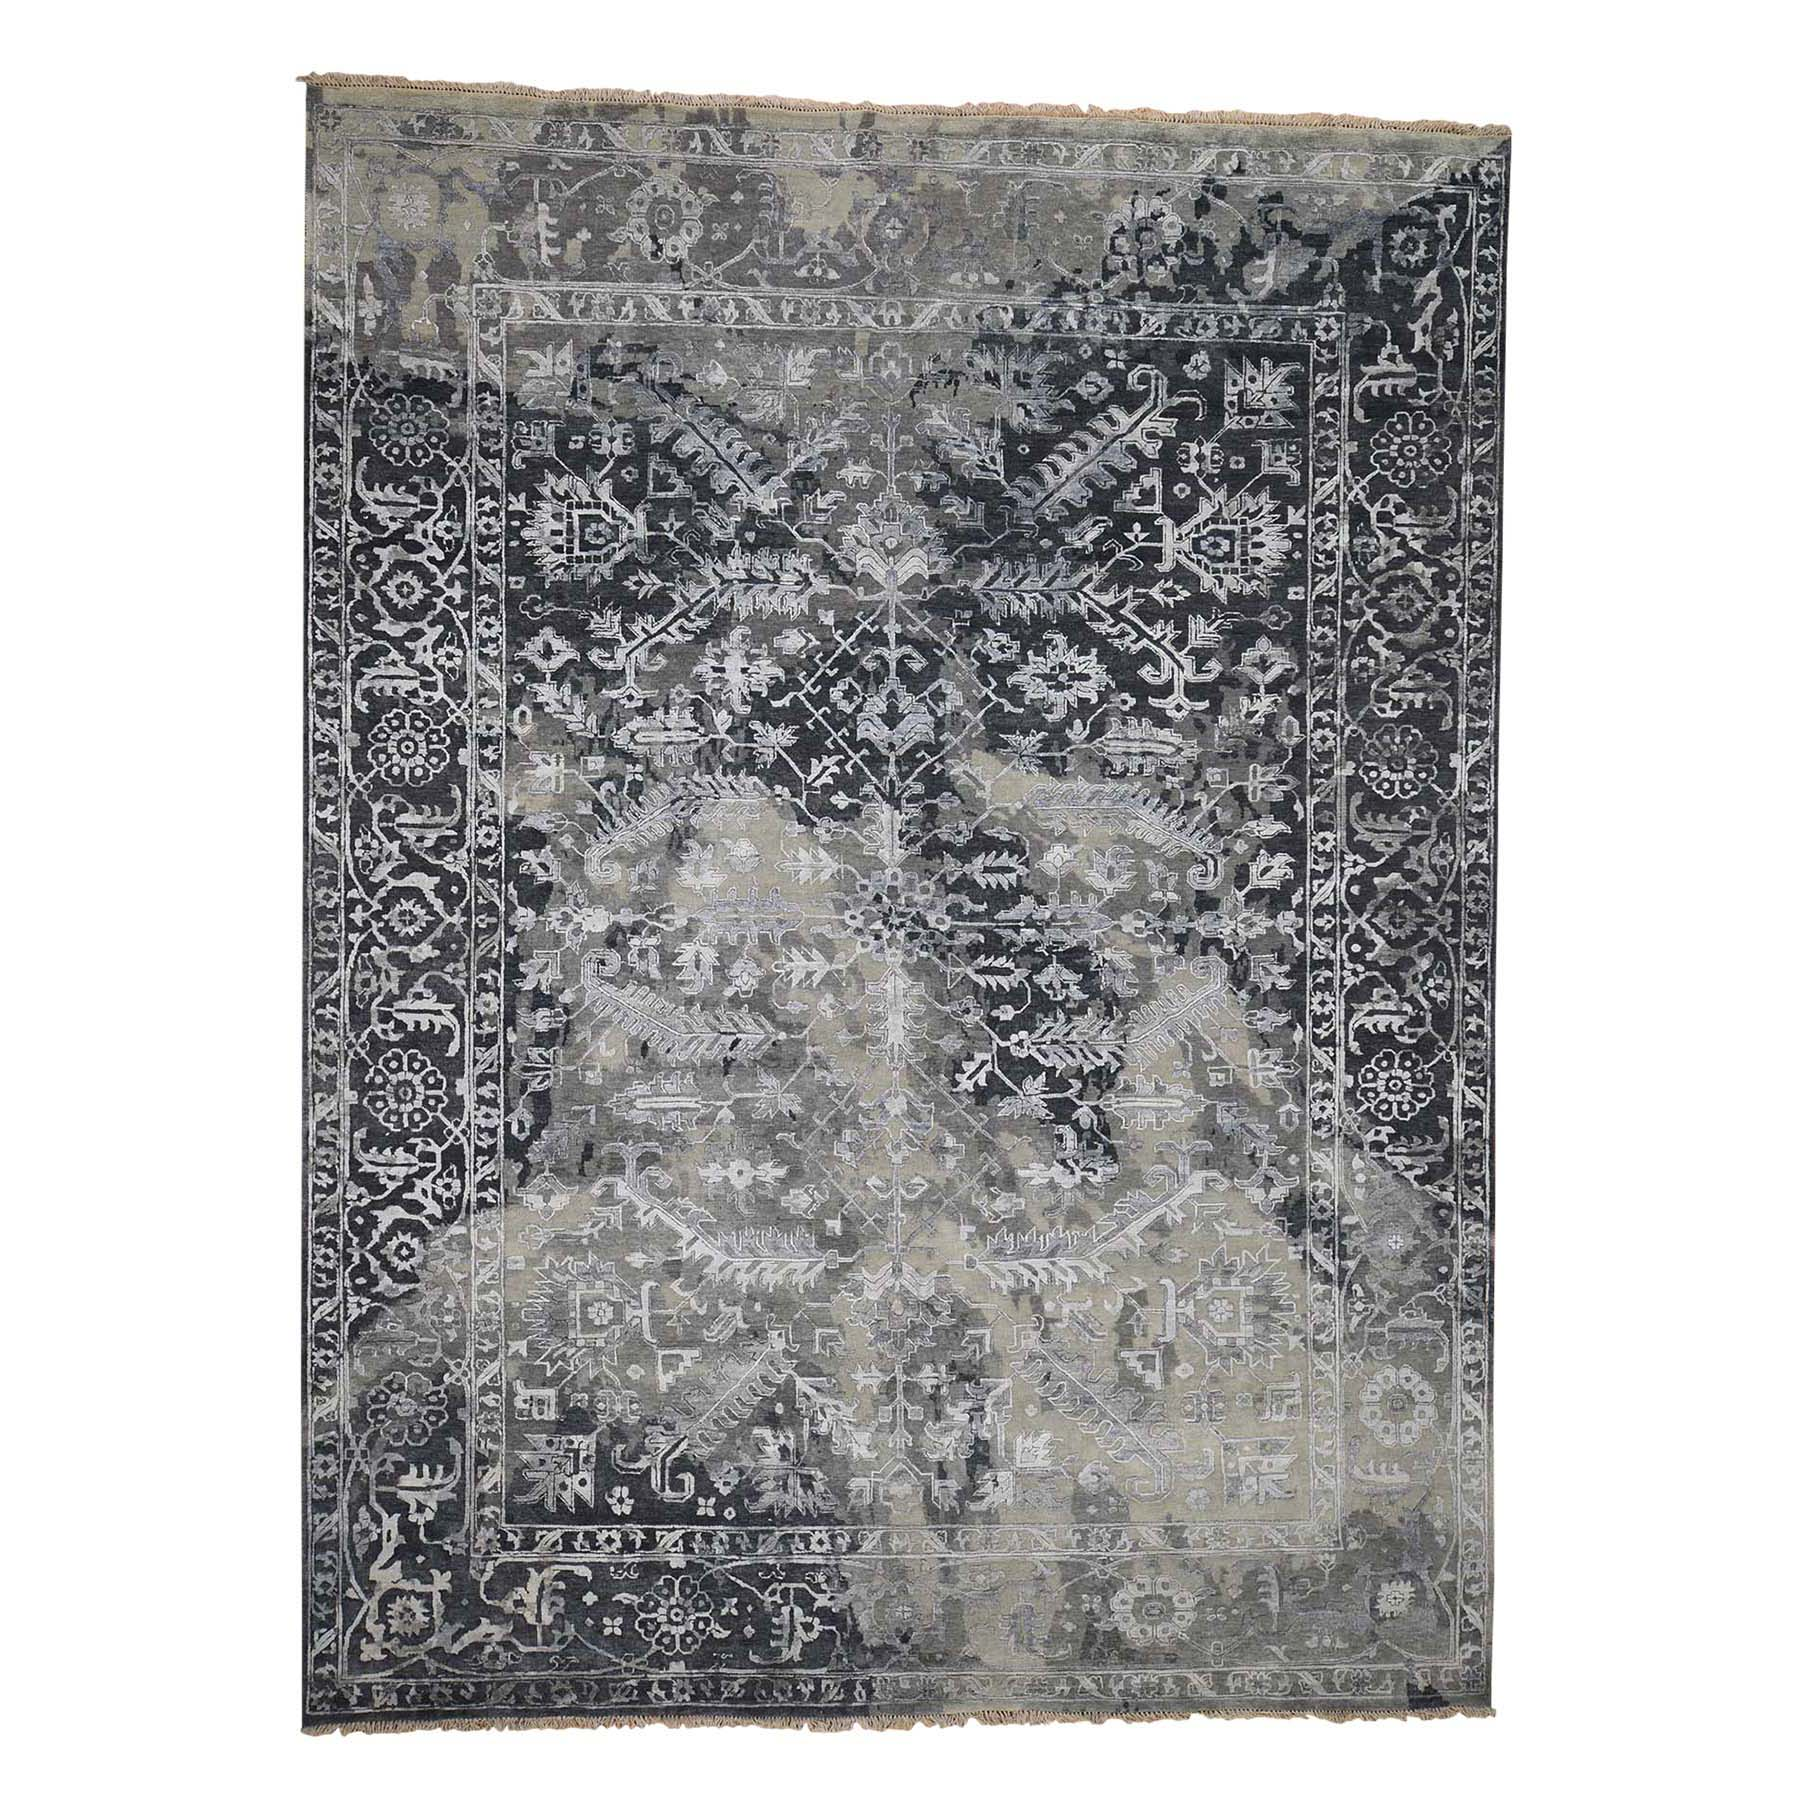 9'X12' All Over Design Broken Persian Heriz Wool And Silk Hand-Knotted Oriental Rug moadcc98